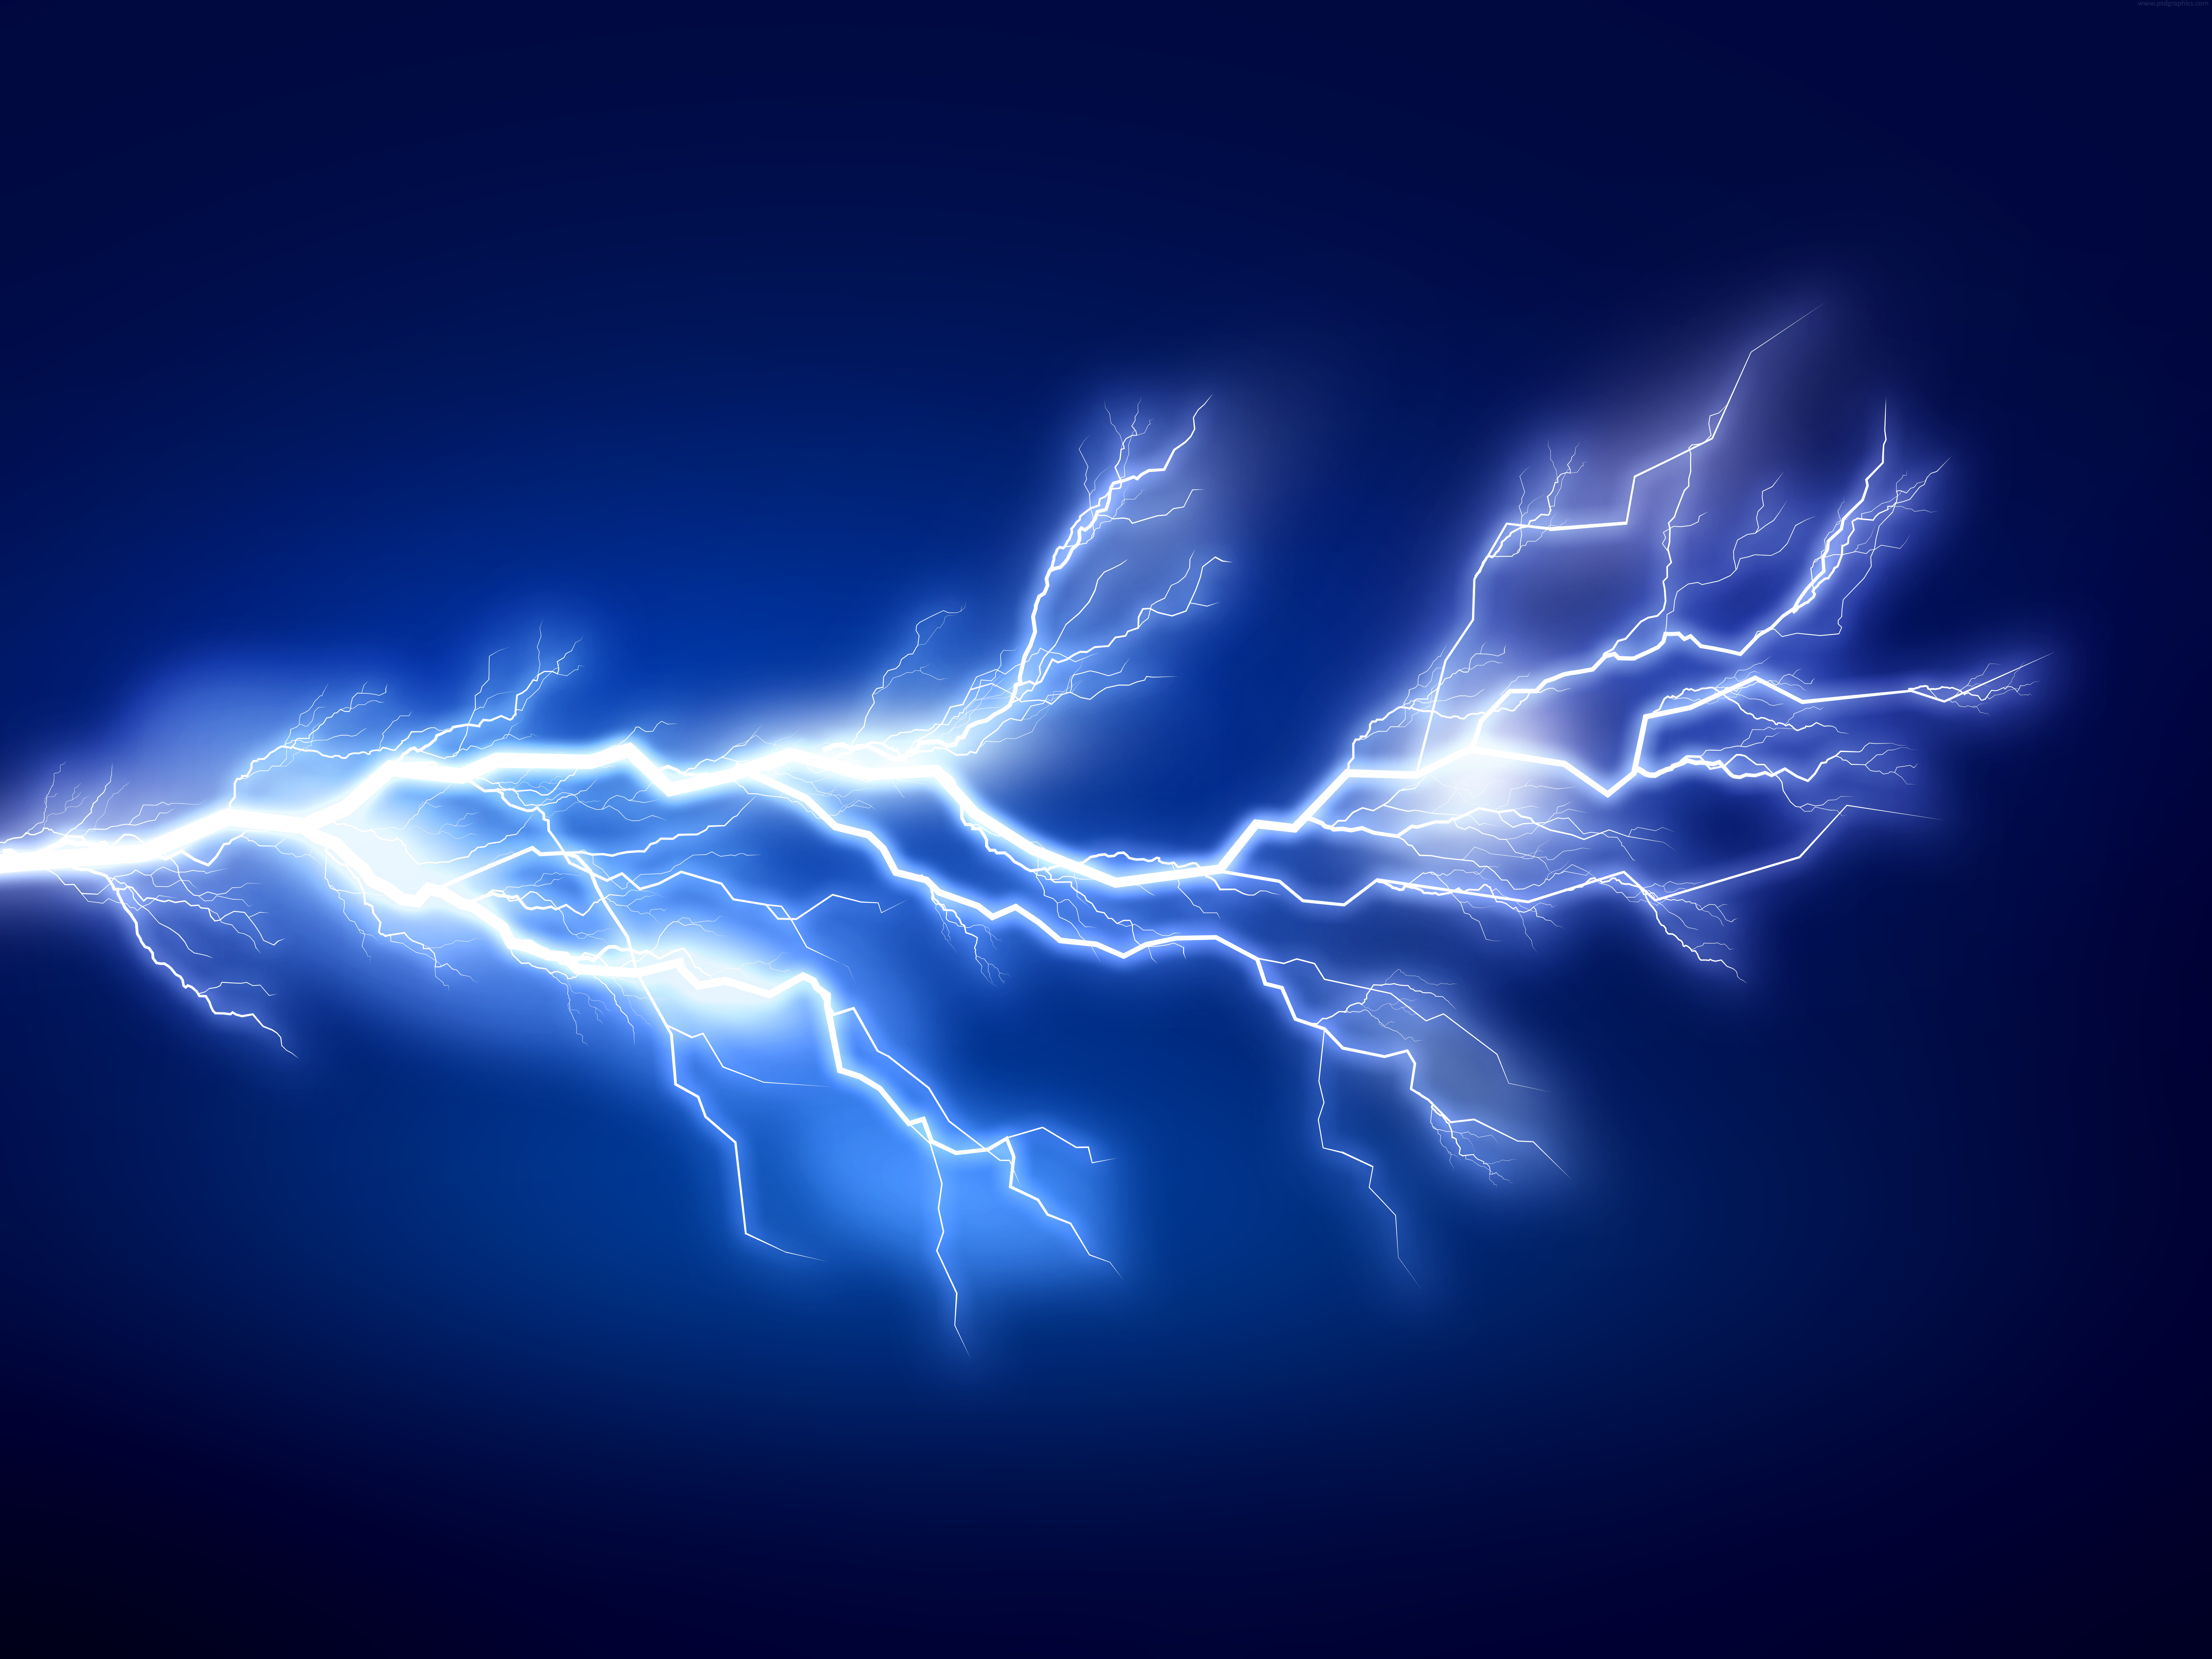 Best 44 Electricity Backgrounds on HipWallpaper Electricity 6400x4800